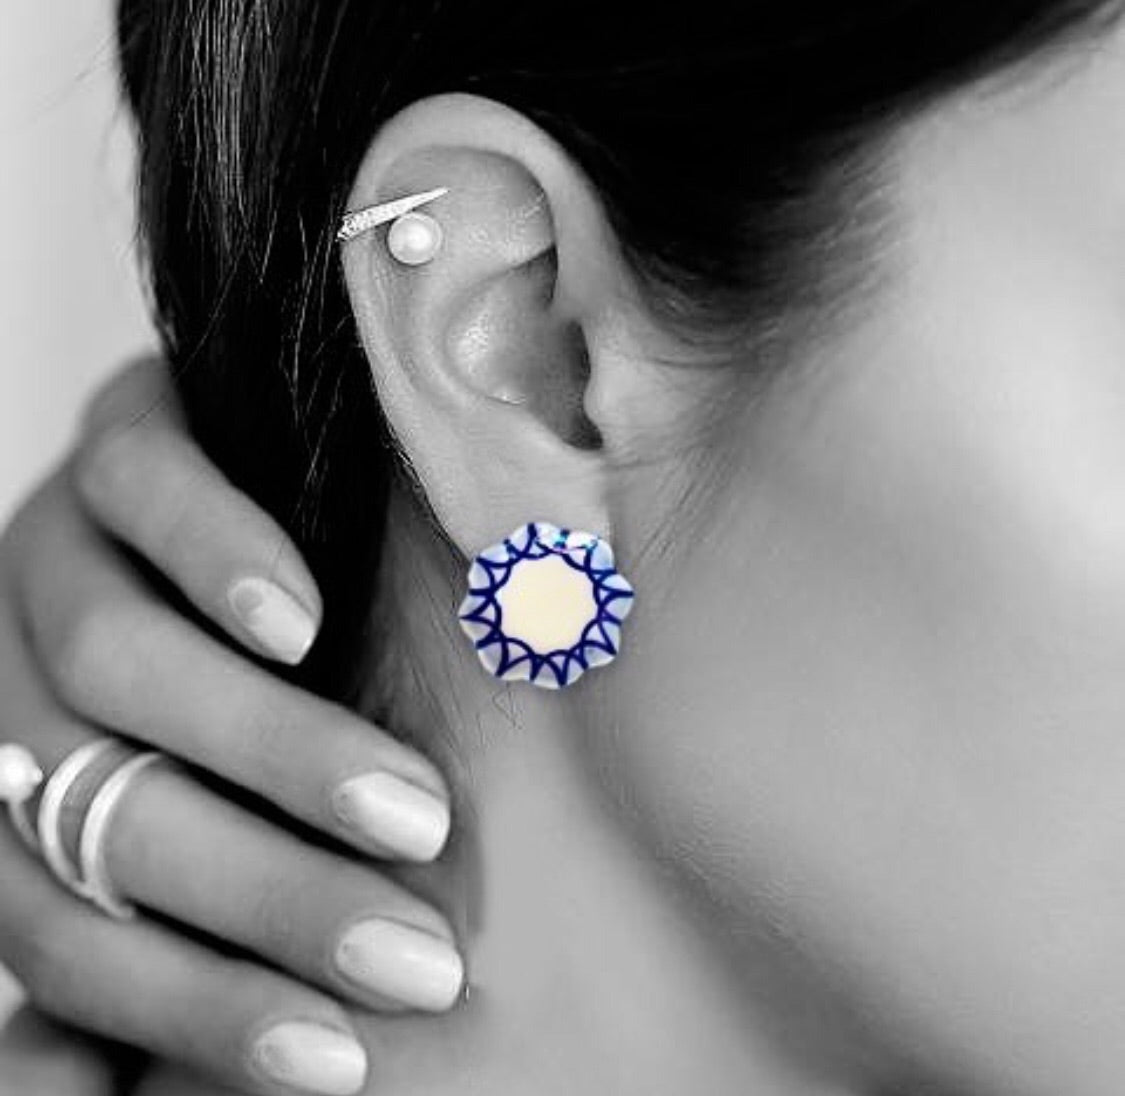 Shinna Ceramic Stud Earrings (Geometric)